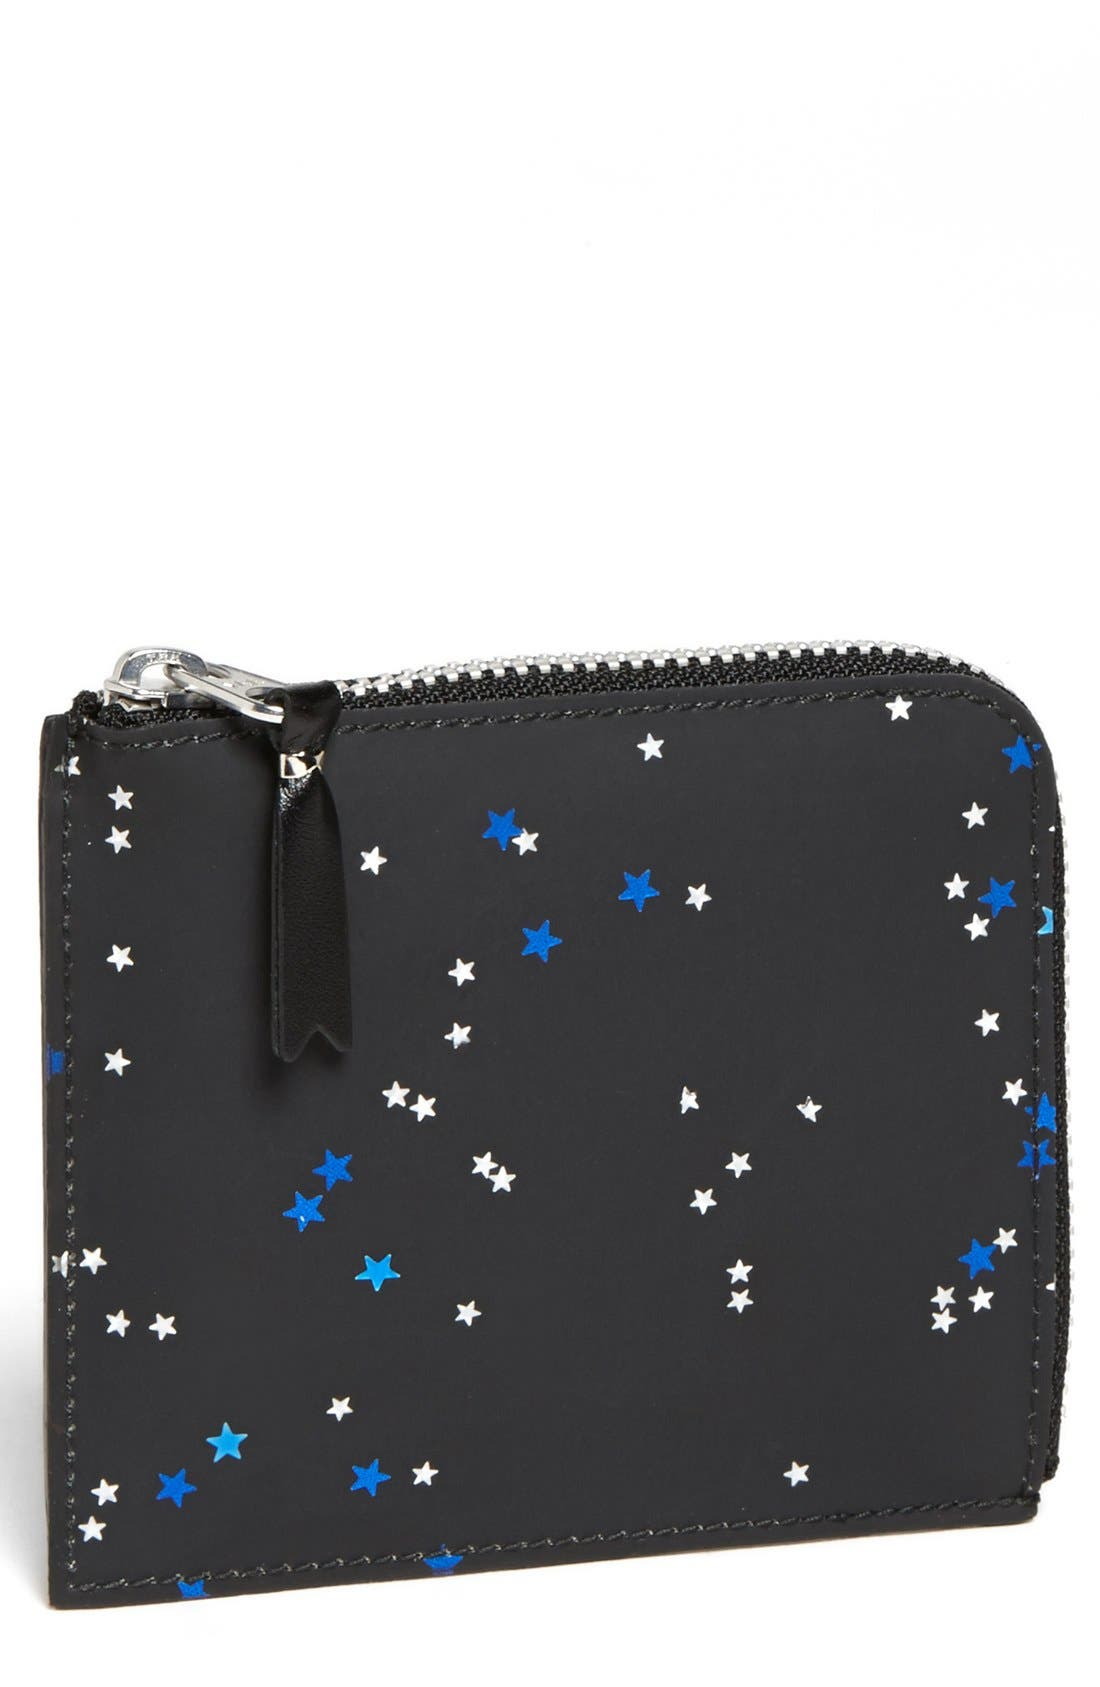 Main Image - Comme des Garçons 'Bright Star - Small' French Wallet